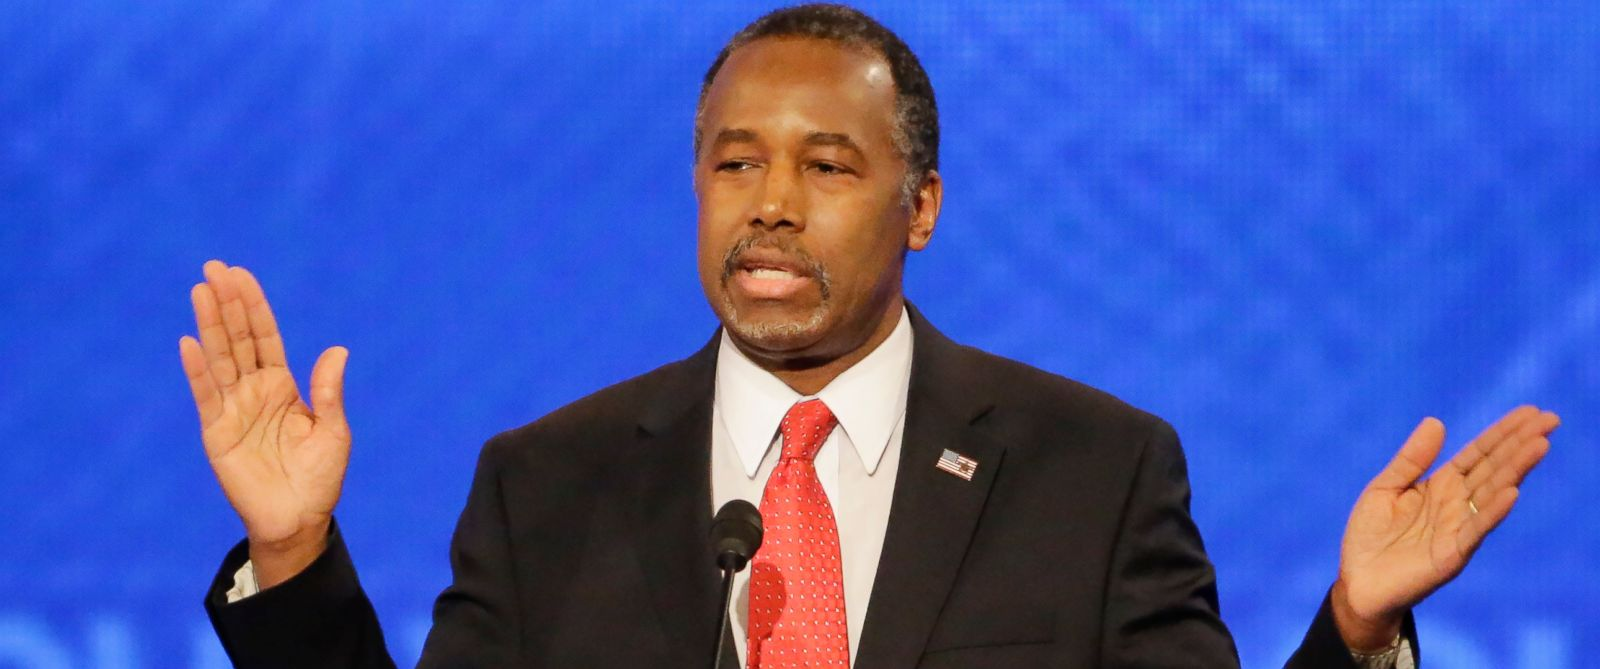 PHOTO: Republican presidential candidate Ben Carson answers a question during a Republican presidential primary debate at the St. Anselm College on Feb. 6, 2016, in Manchester, N.H.